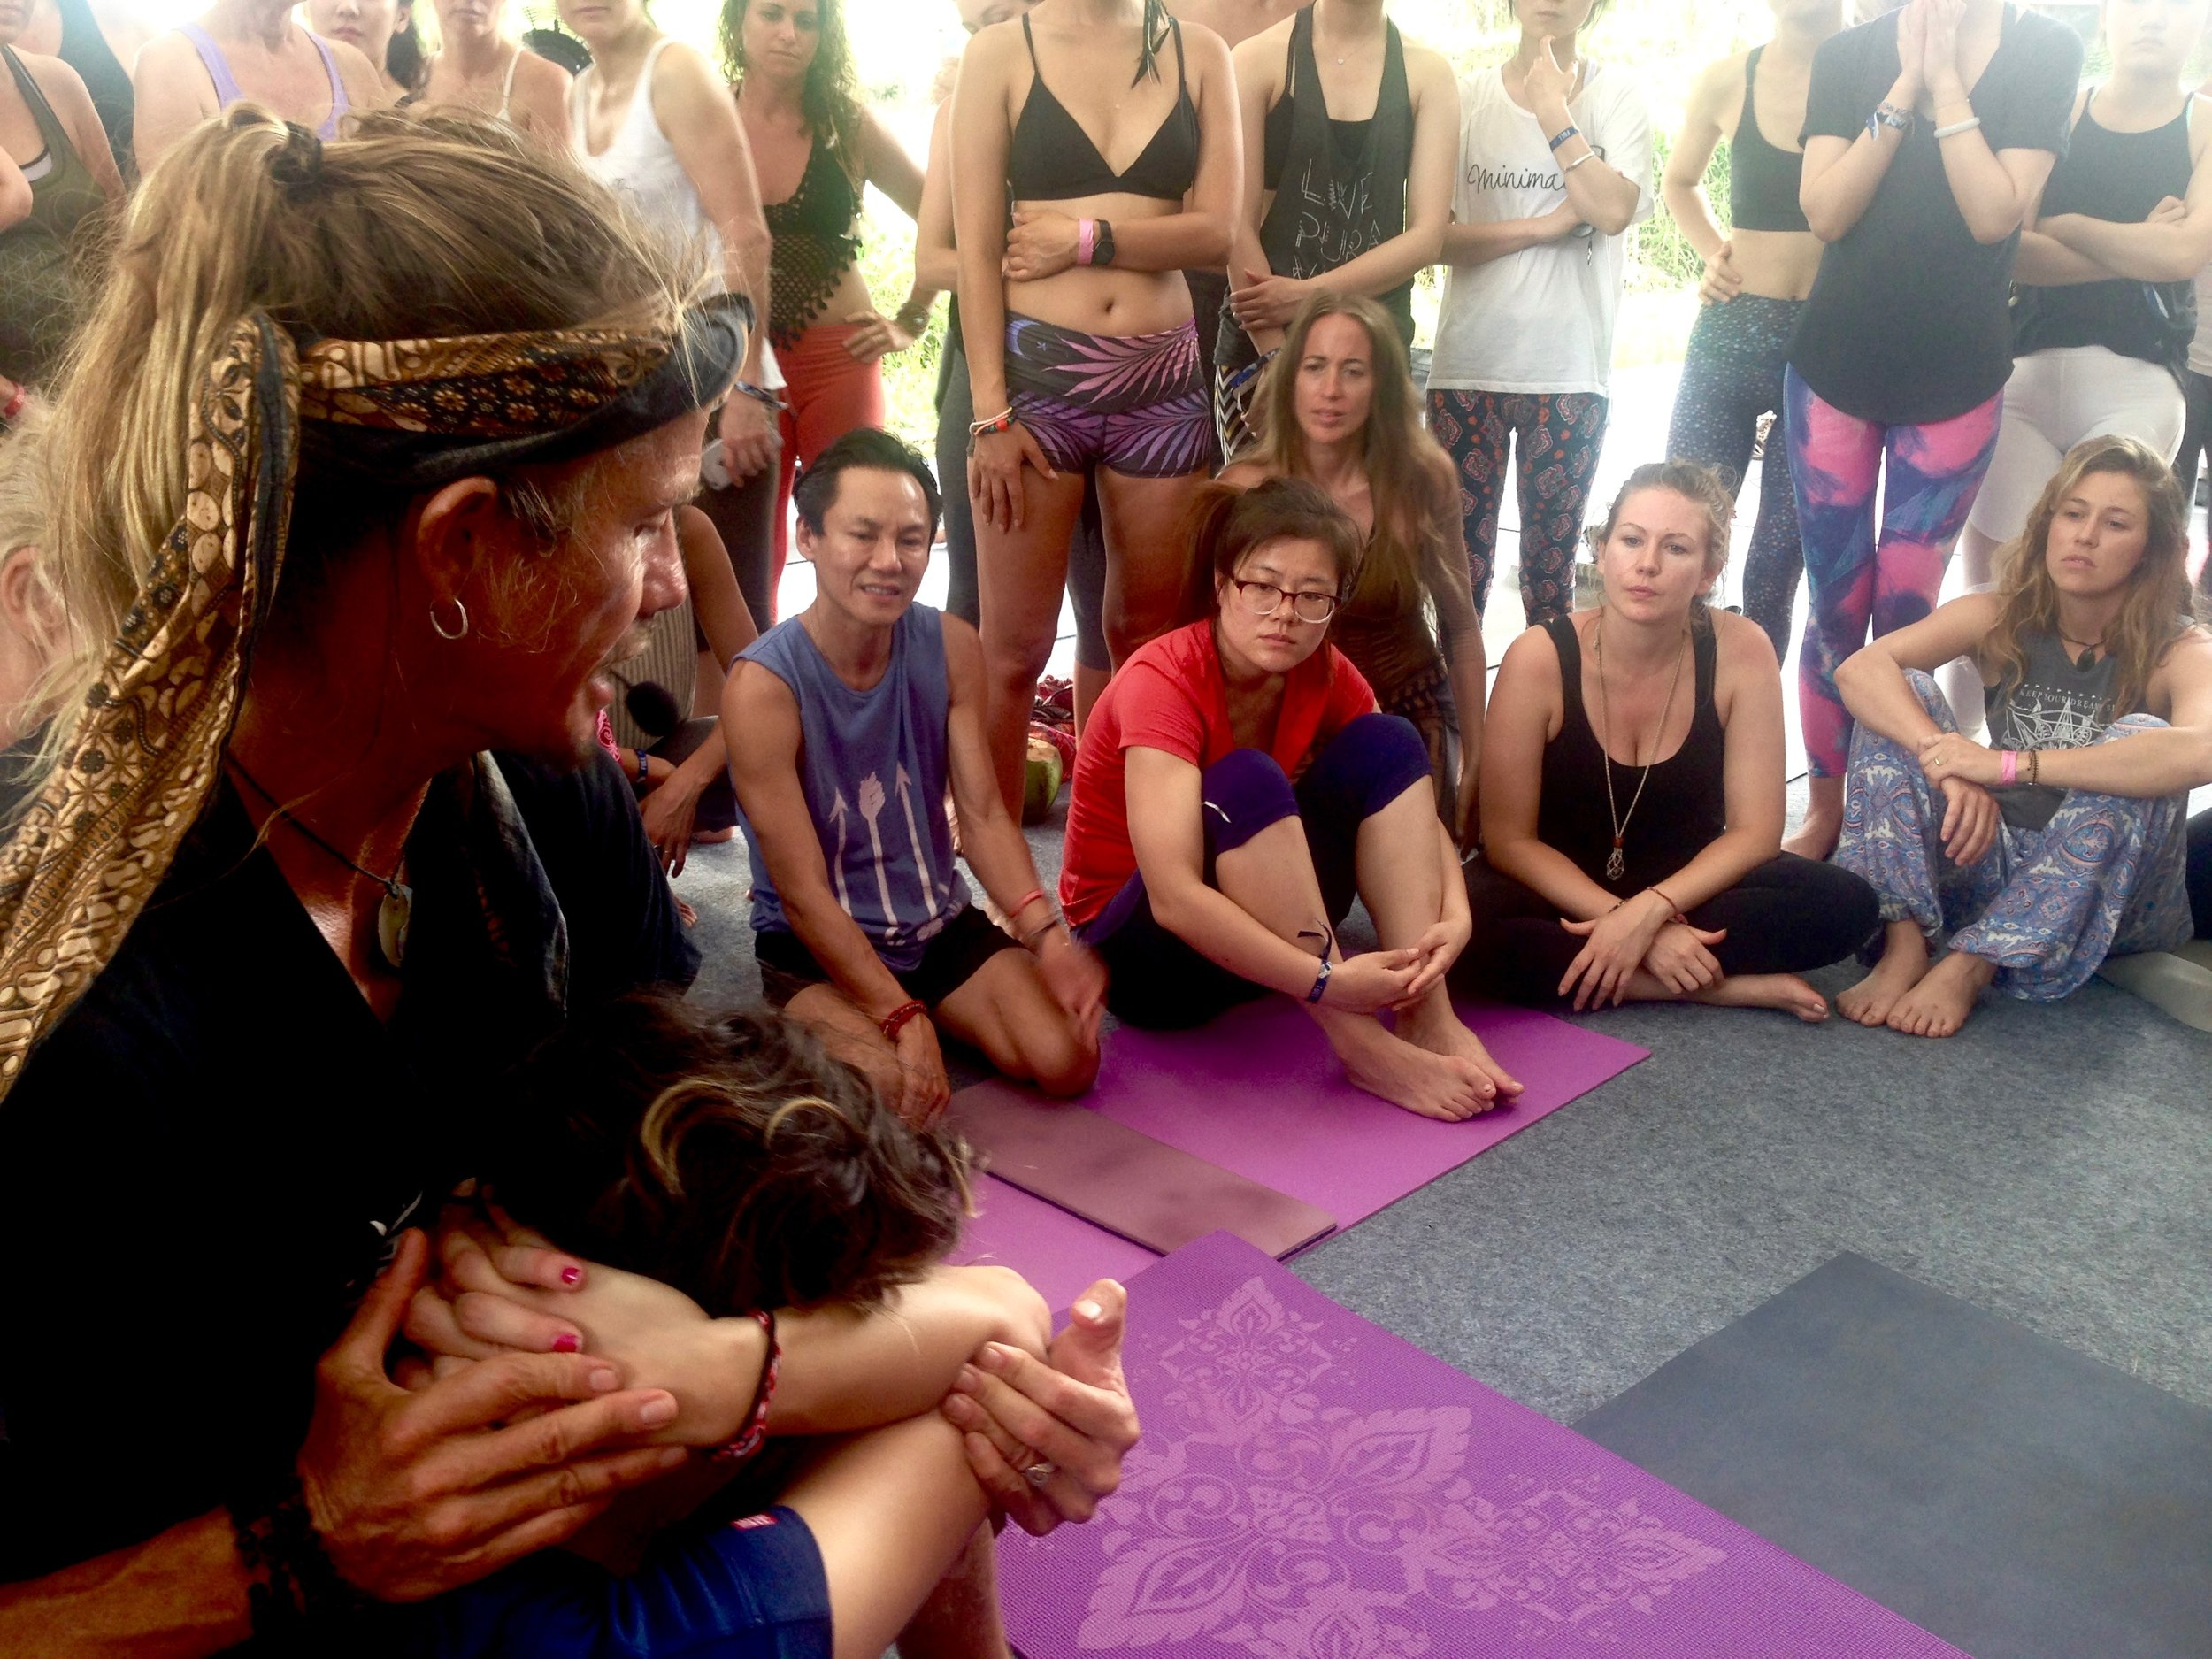 Sacred art of shiatsu workshop in the Spirit Corner Pavilion. Yes, if you're lucky, I can practice on you sometime.